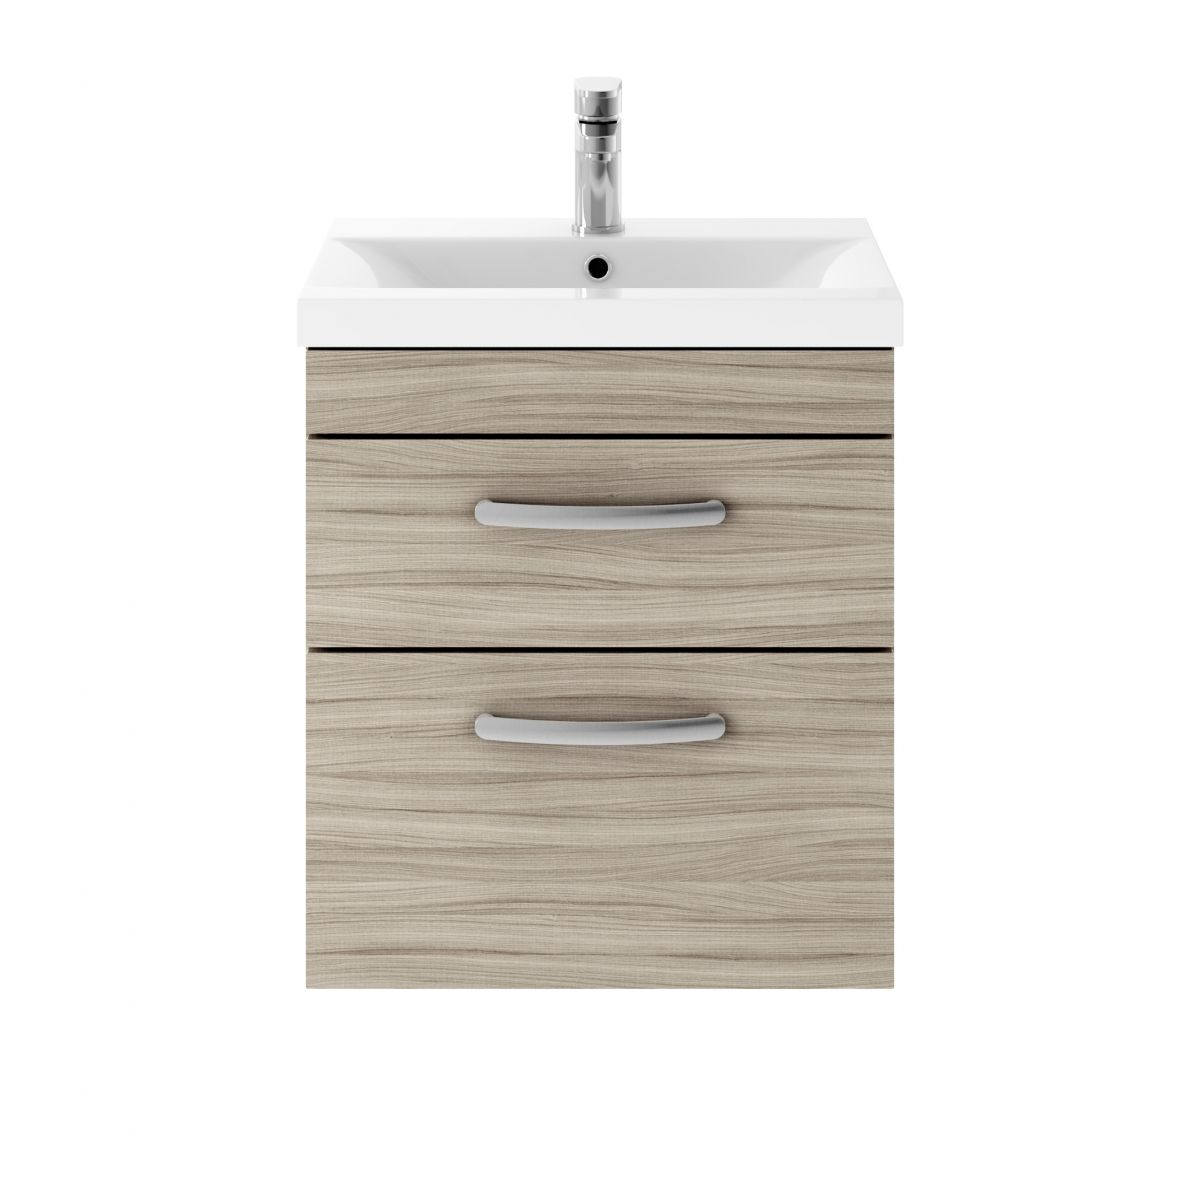 Premier Athena Driftwood 2 Drawer Wall Hung Vanity Unit 500mm with Mid Edge Basin